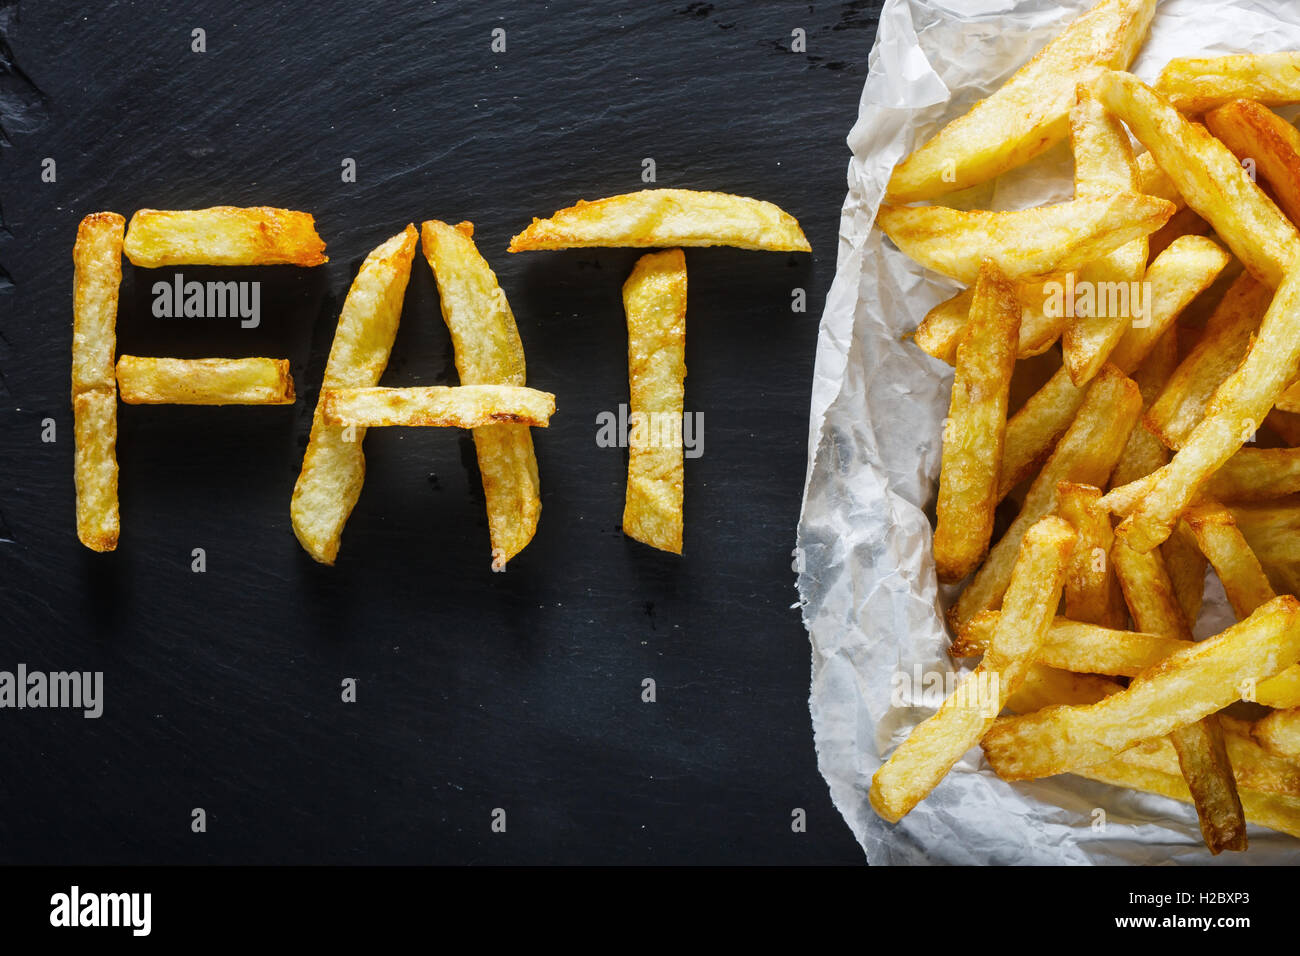 Unhealthy food concept - french fries on slate board - Stock Image